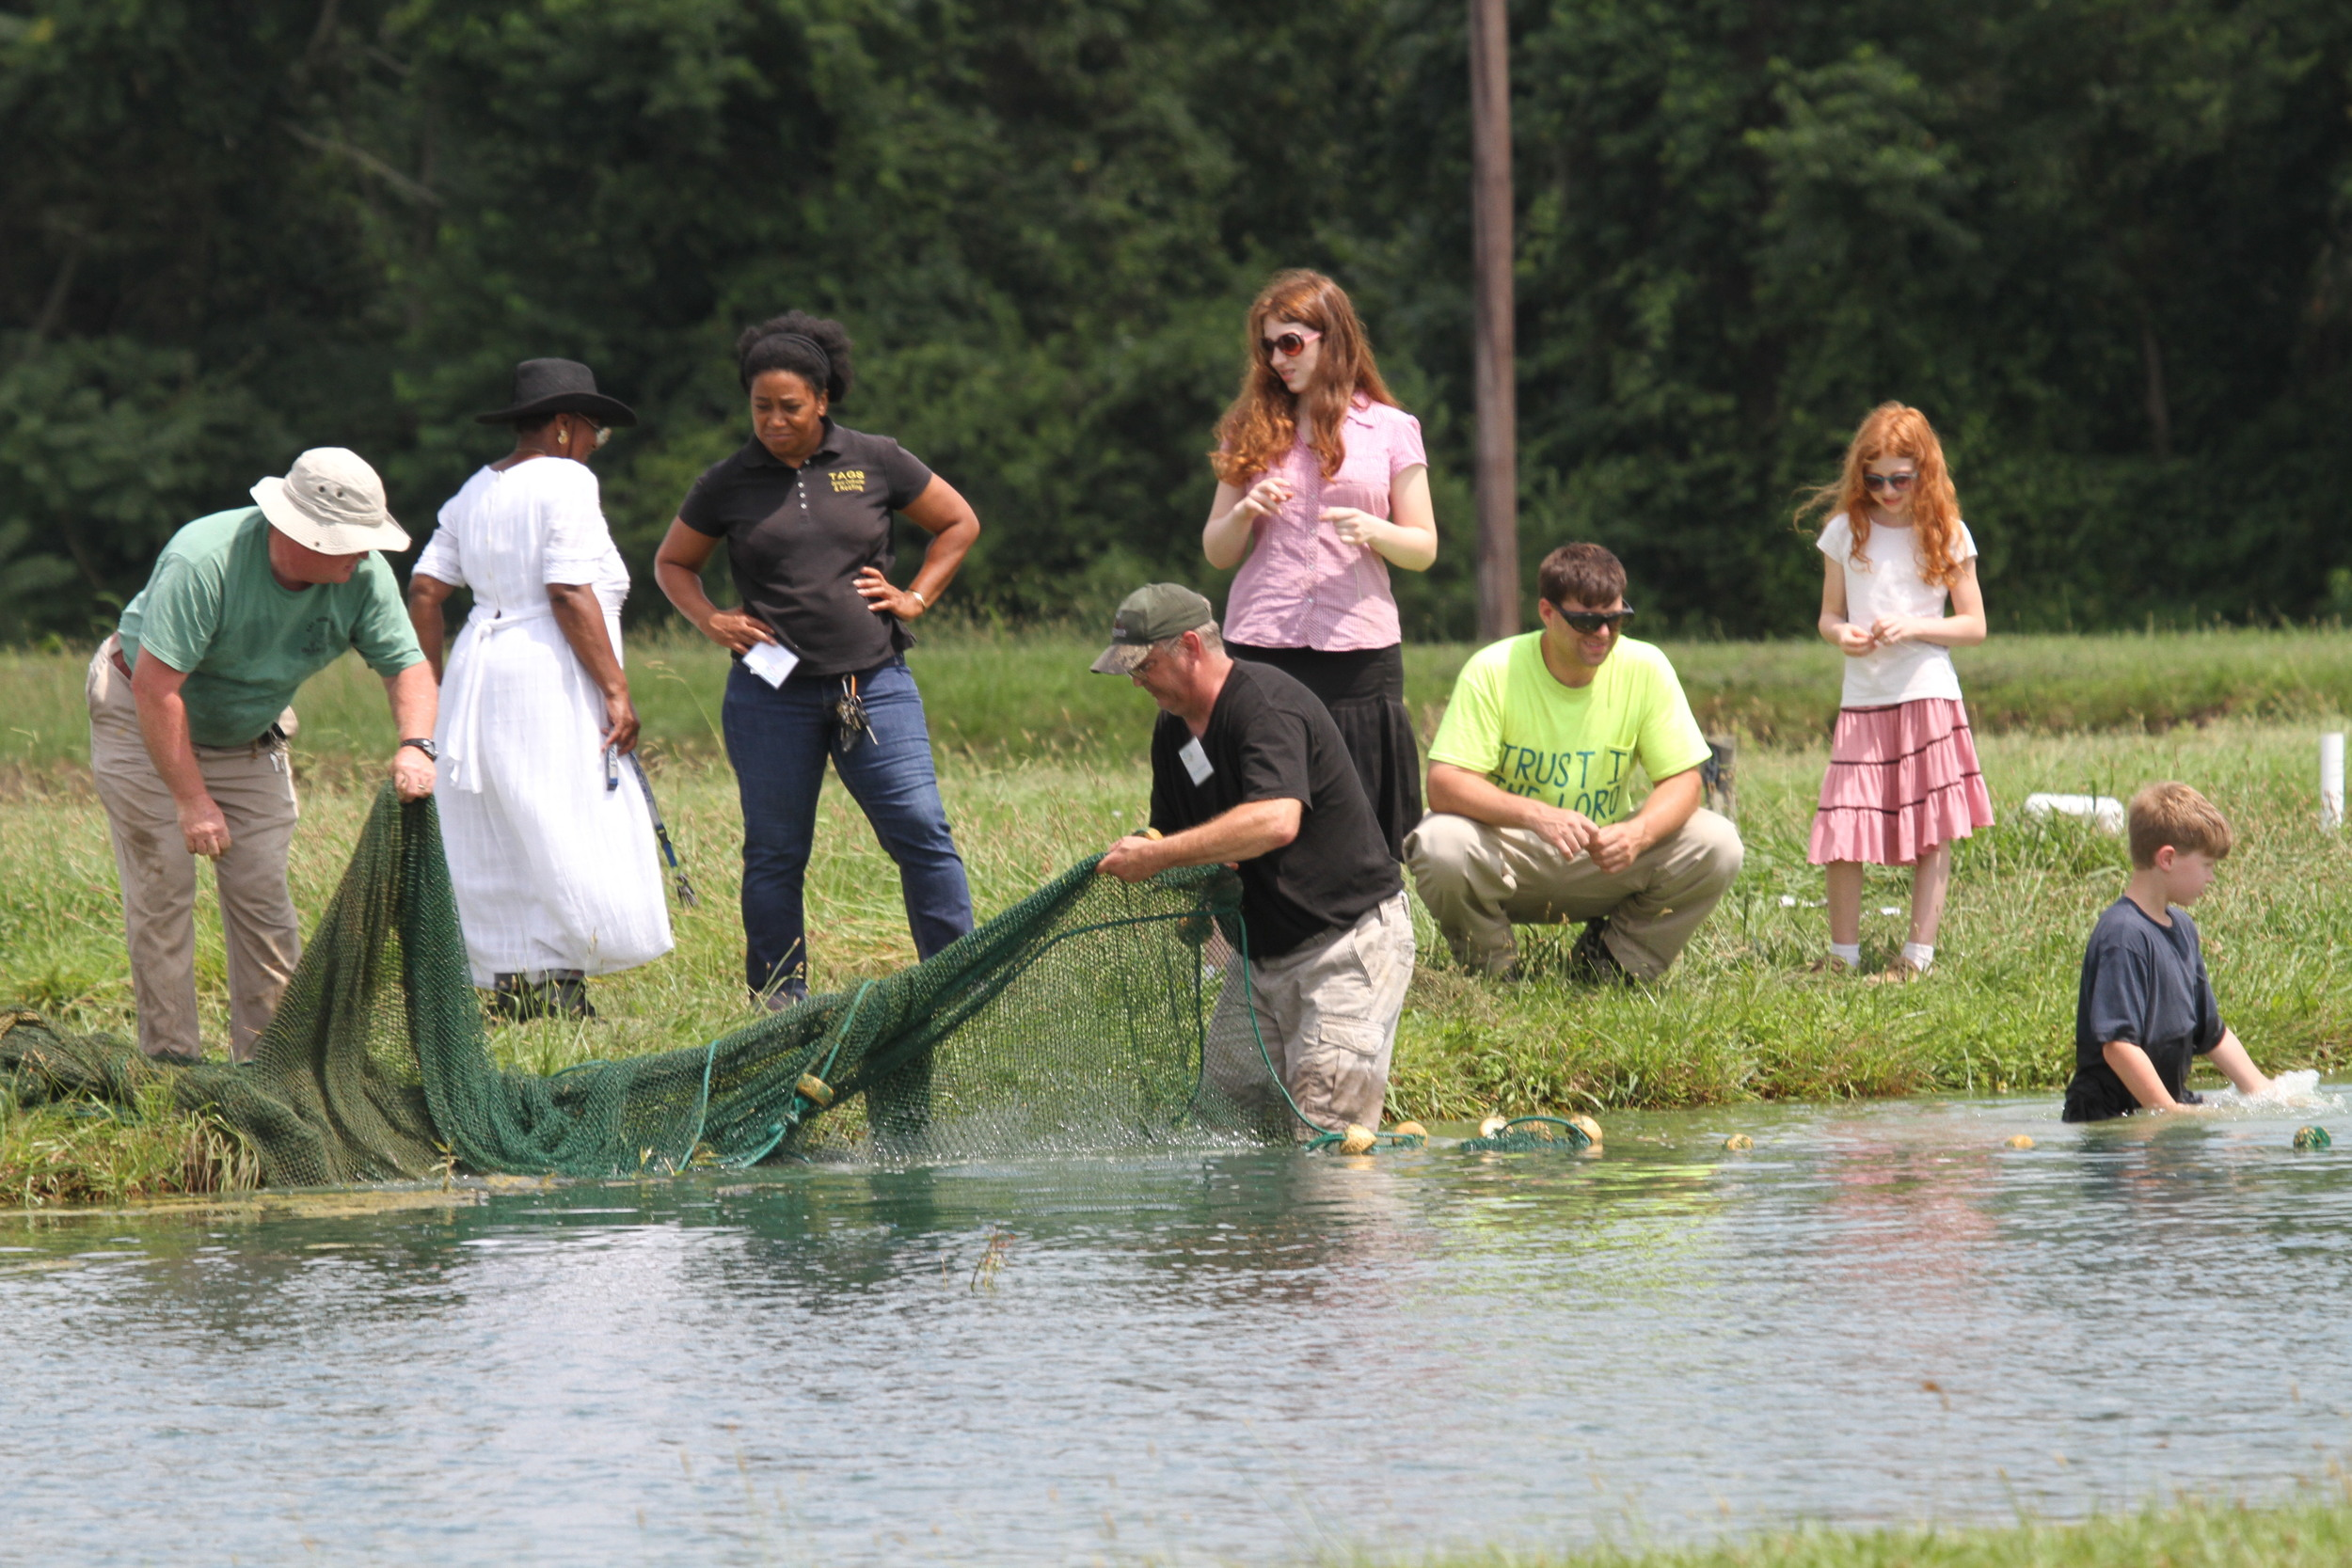 Fish school participants seine a catfish pond during a past Fish School program.